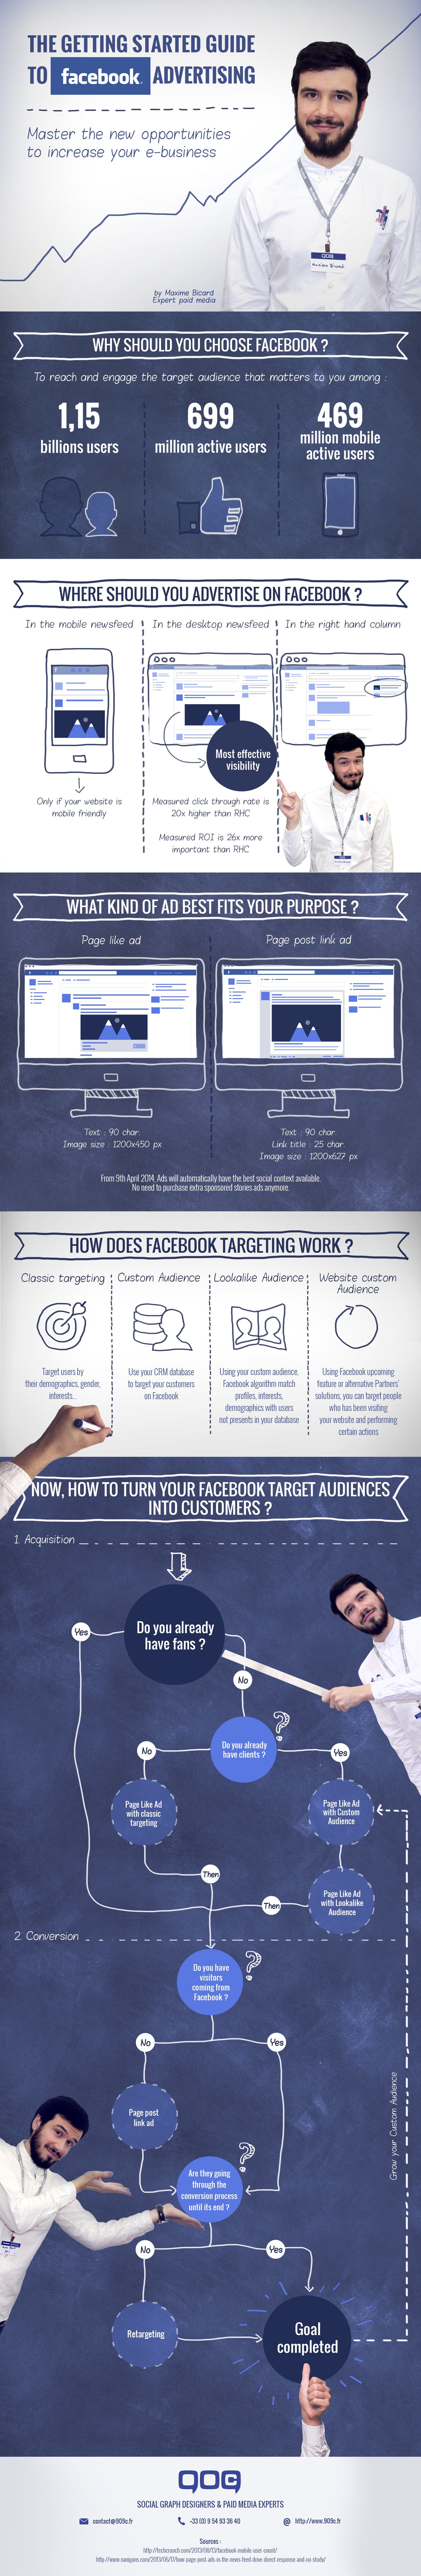 facebook_ads_social-media_feffe_kaufmann_blog_infographic